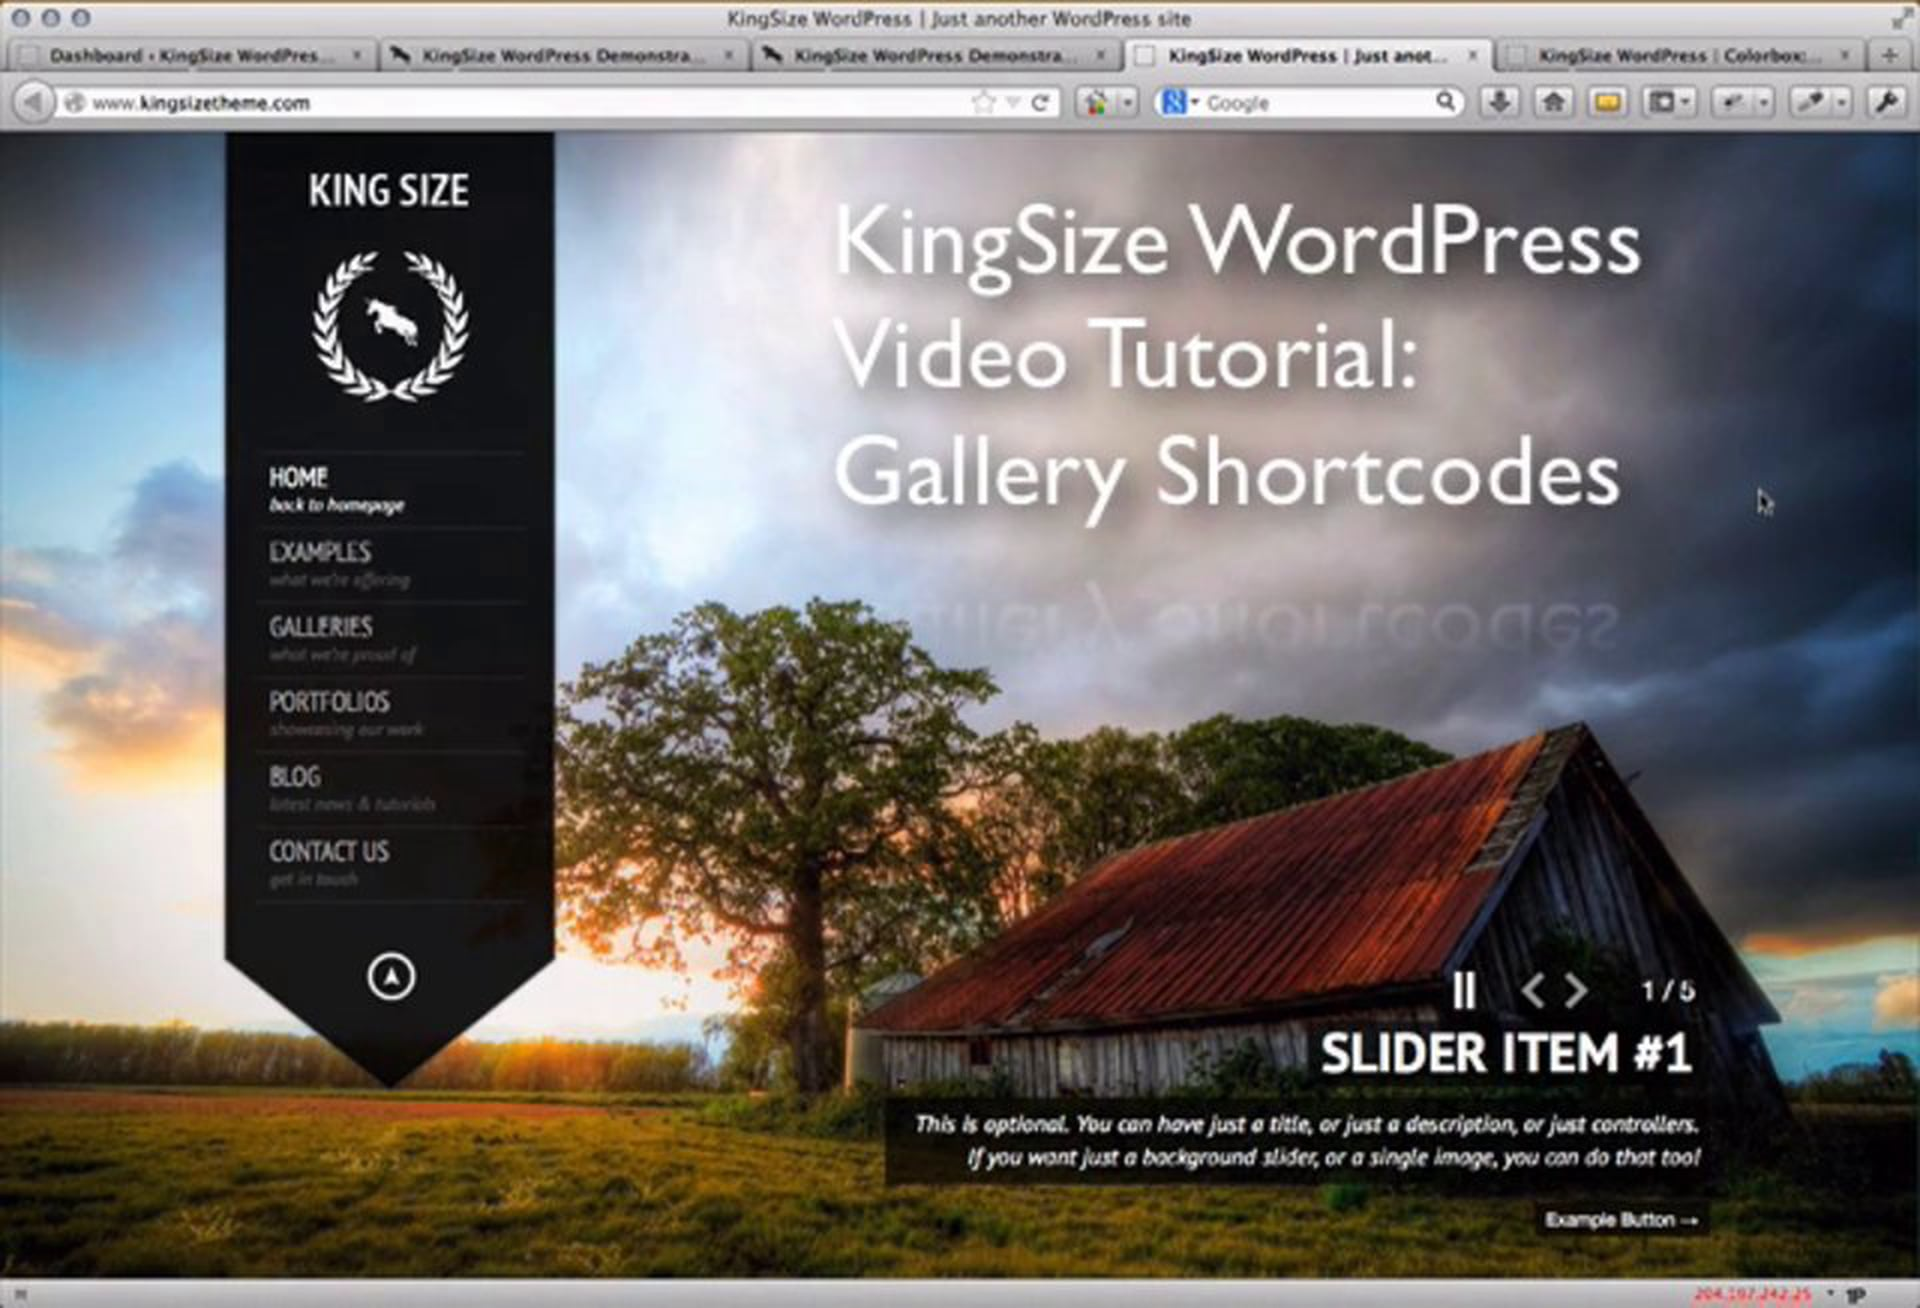 7. KingSize WordPress: Creating Galleries with Shortcodes